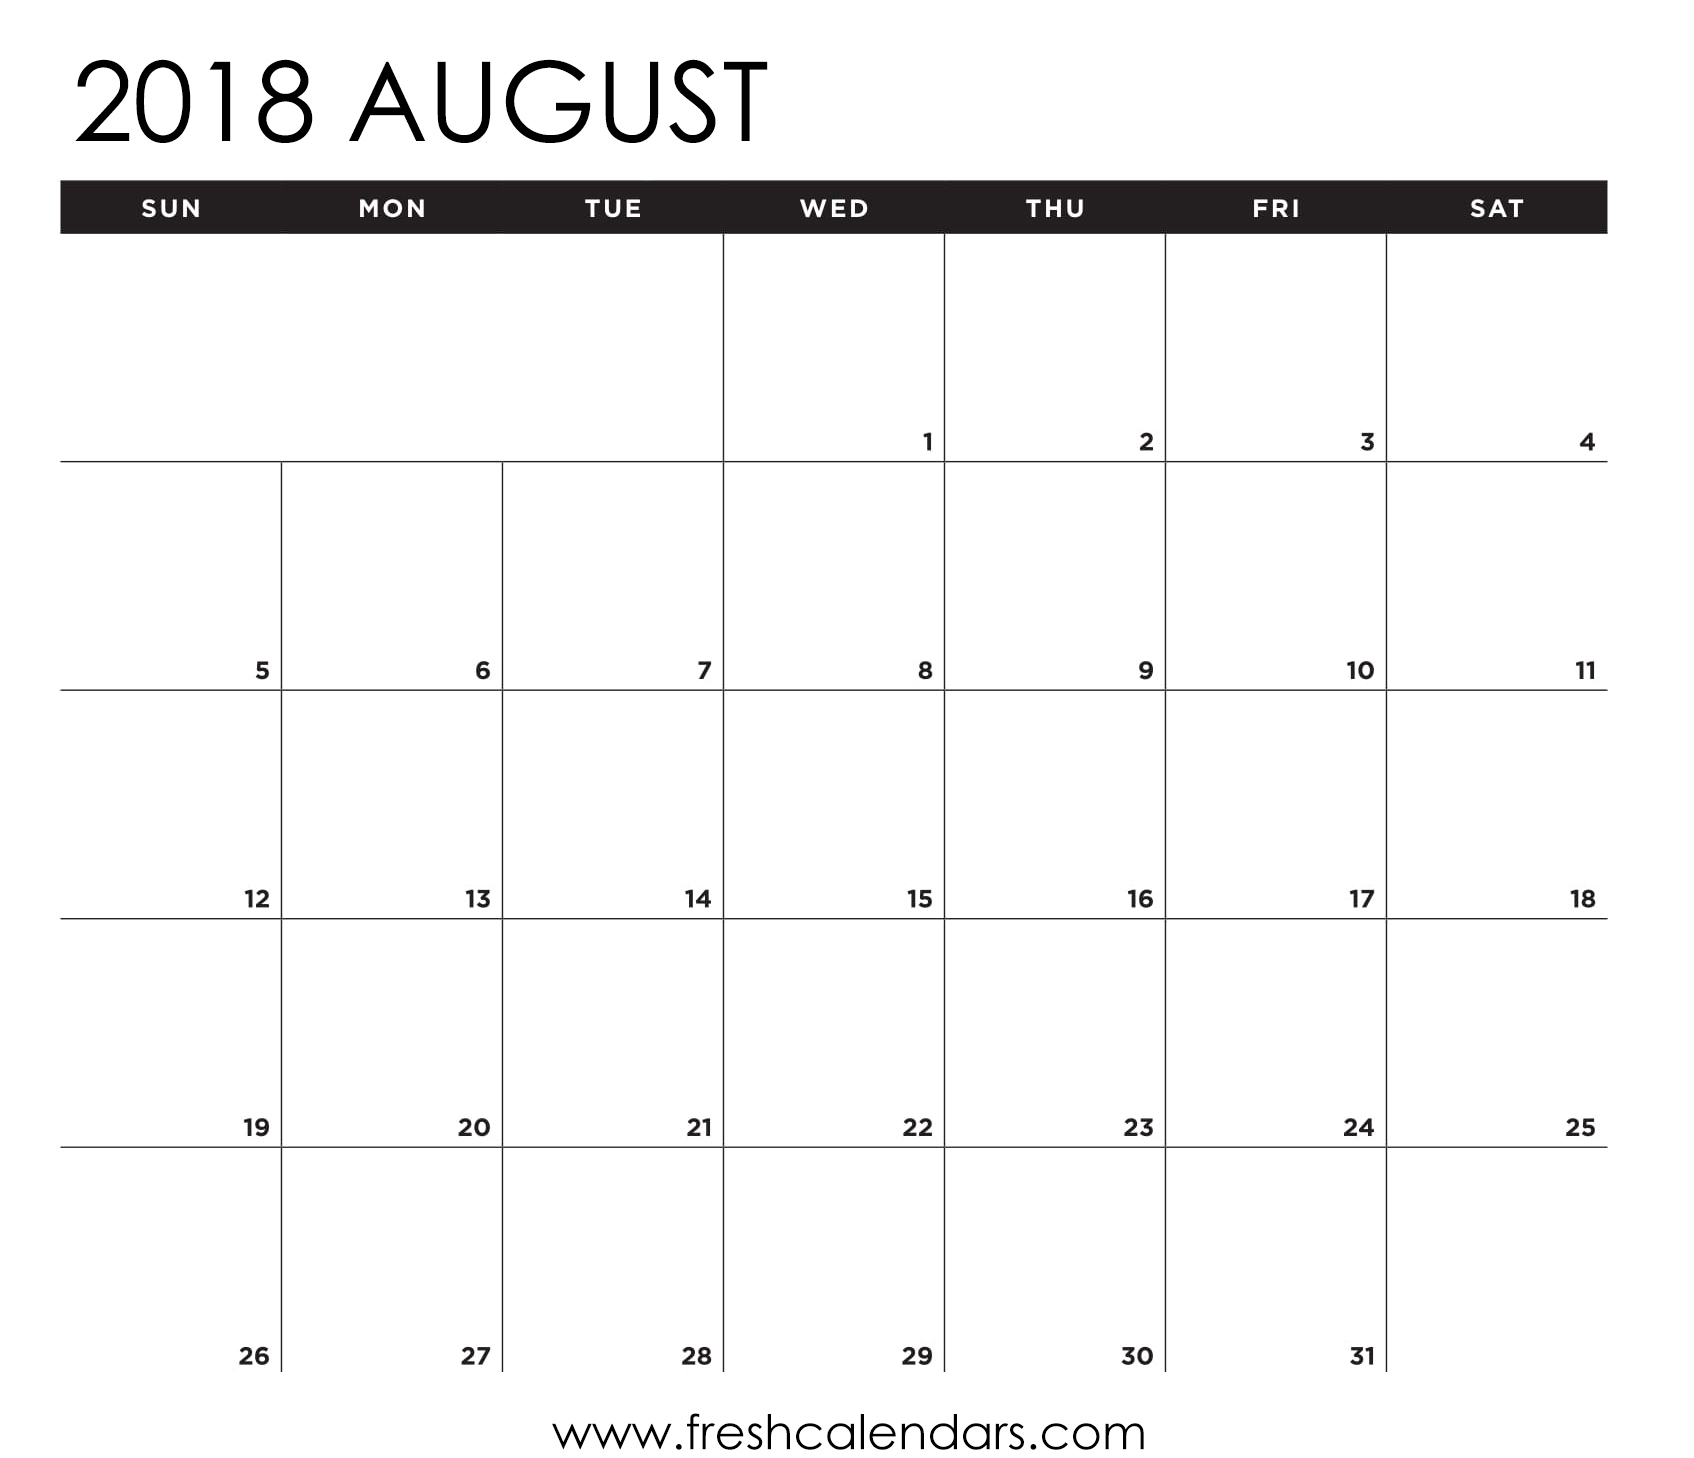 24calendarcom February 2020 August 2018 Calendar Printable   Fresh Calendars